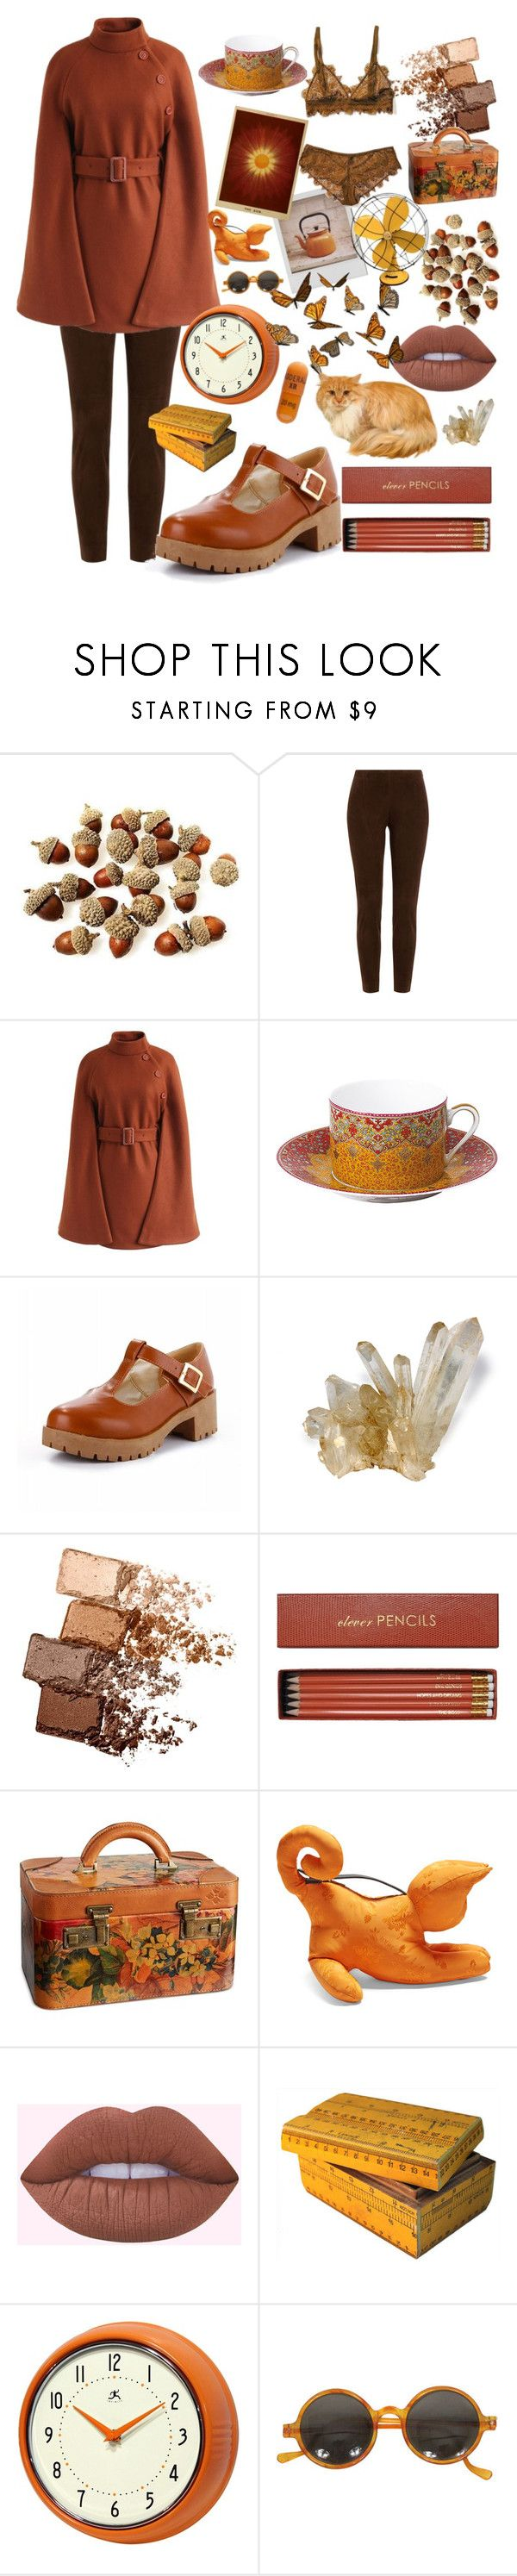 """""""Autumn Feeling"""" by nova-super ❤ liked on Polyvore featuring Polaroid, Ralph Lauren Black Label, Chicwish, Philippe Deshoulières, Bergdorf Goodman, Maybelline, Sloane Stationery, Patricia Nash, Loewe and Dessous"""